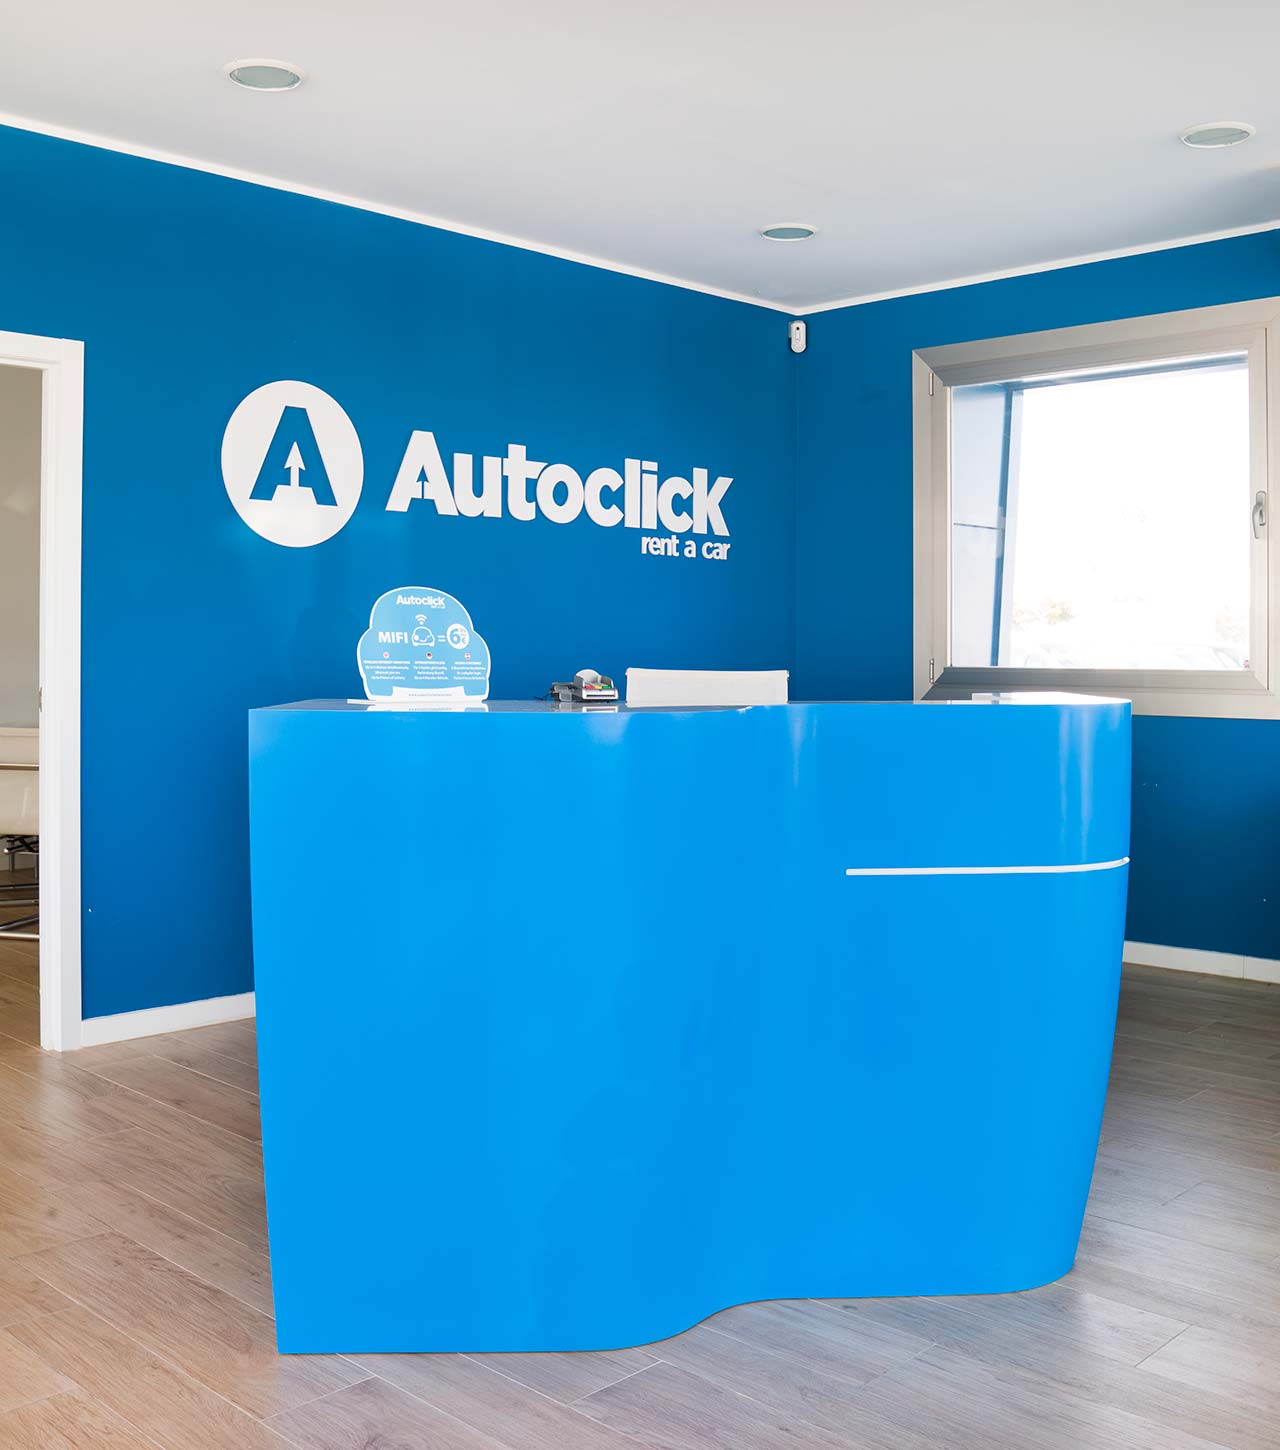 autoclick rent a car - palma de mallorca - spain. Solid Surface  furniture